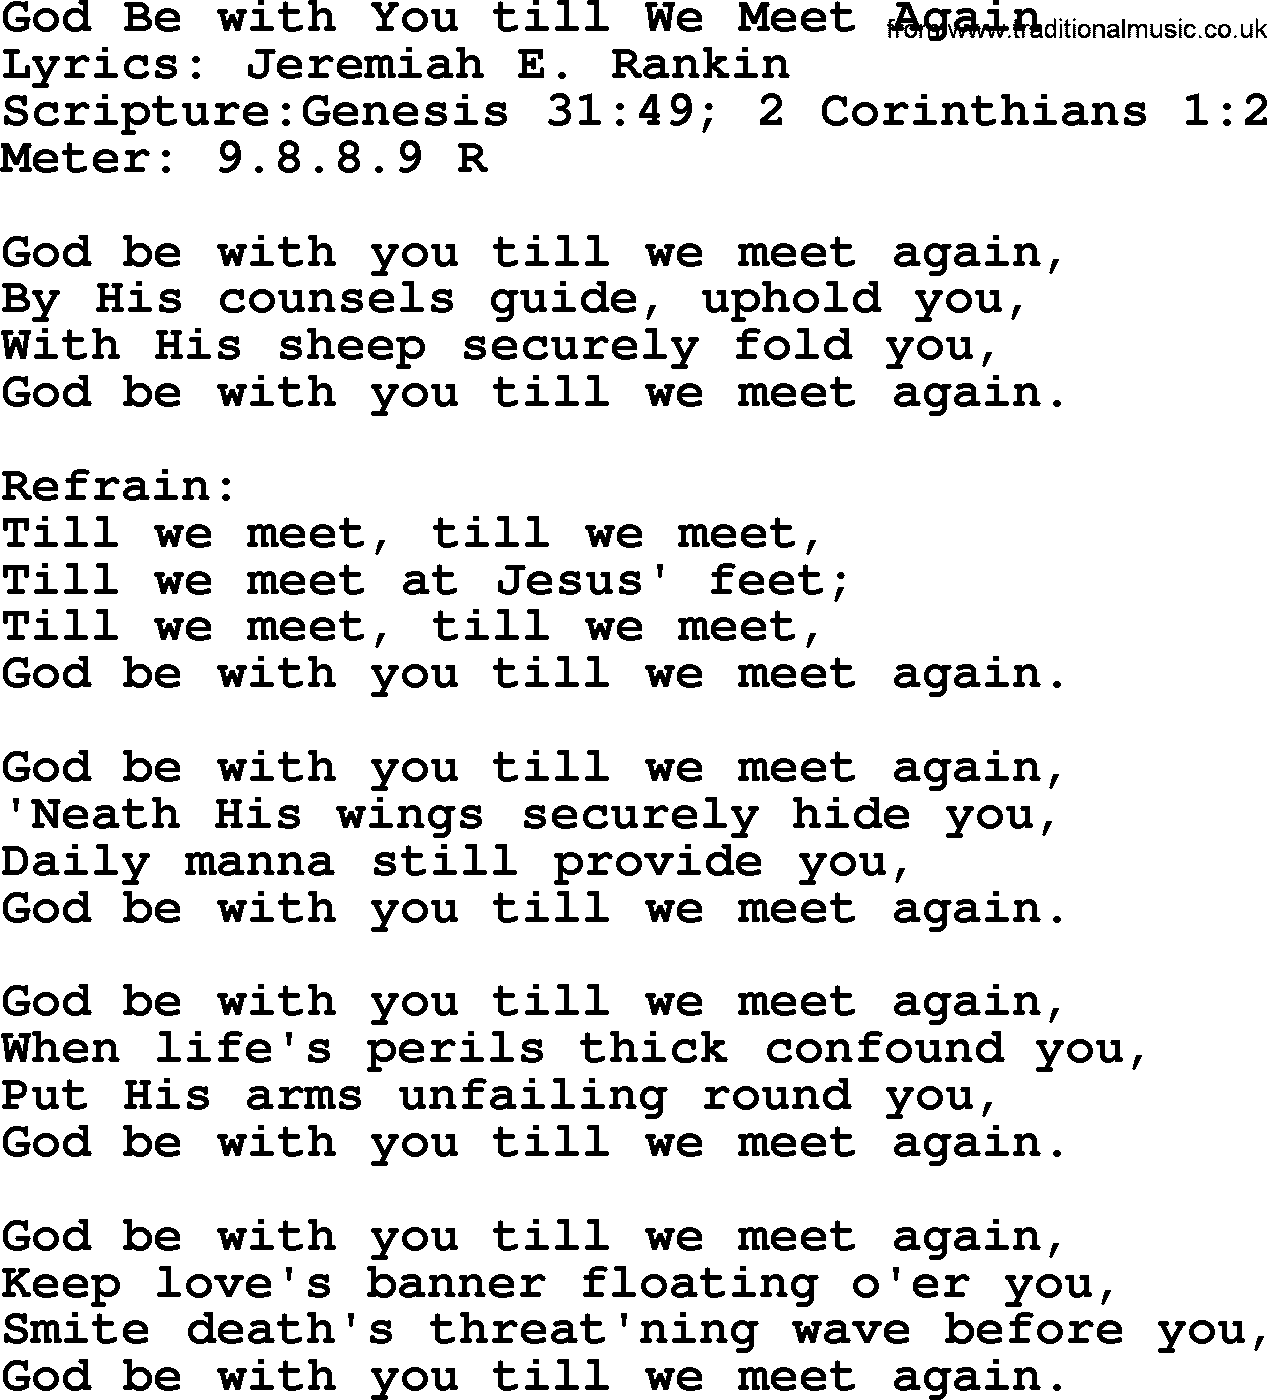 god be with you till we meet again lyrics in french